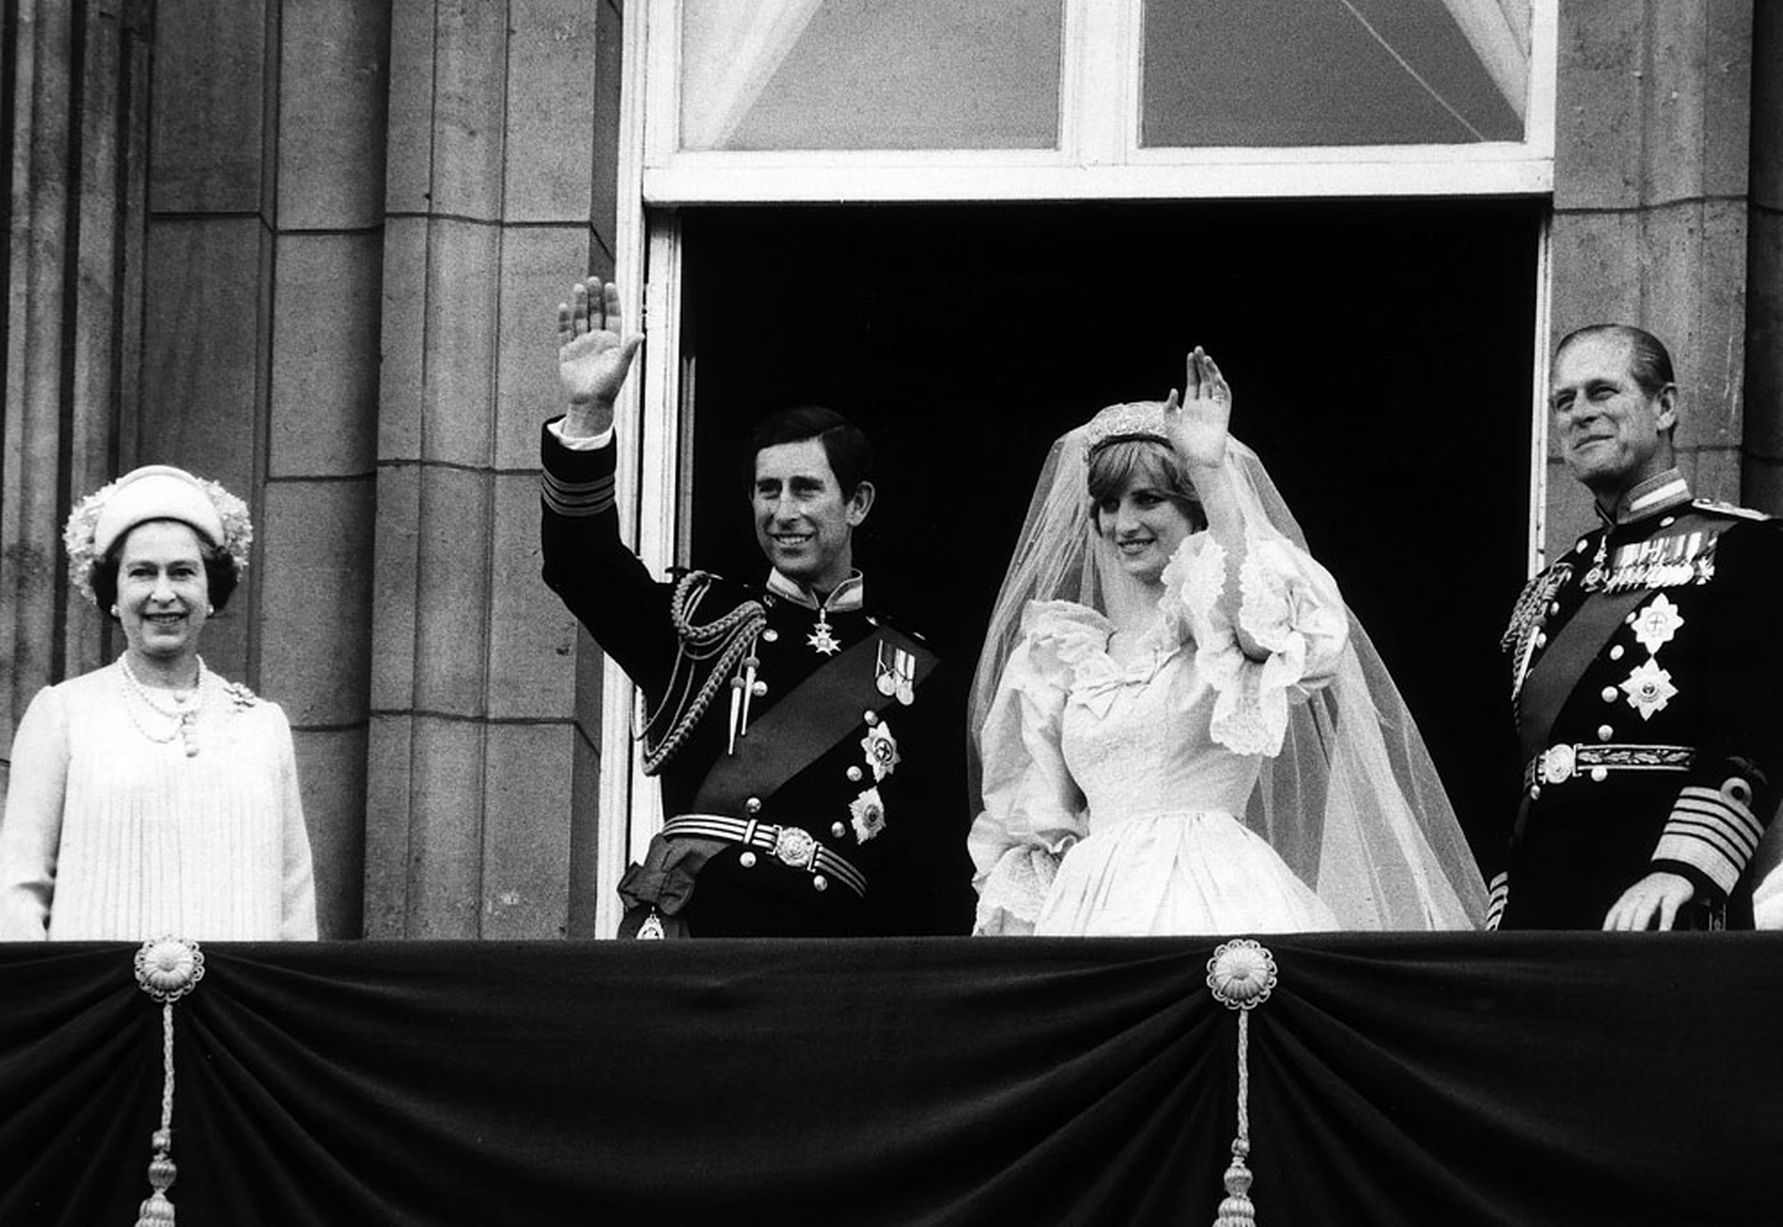 Princess Diana Wedding Day Photo C GETTY IMAGES 0178